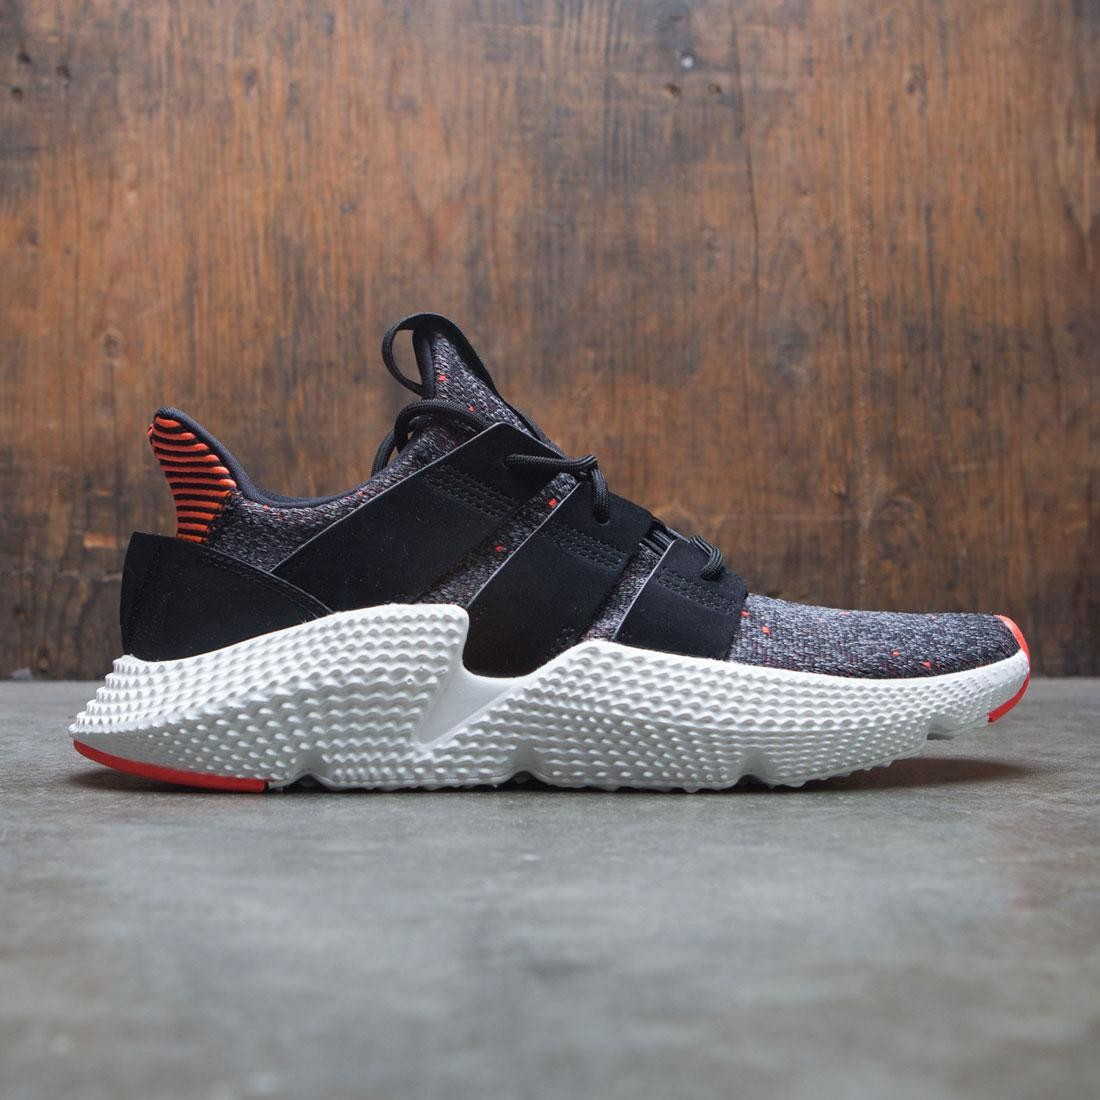 041284f19f1 adidas men prophere black core black solar red